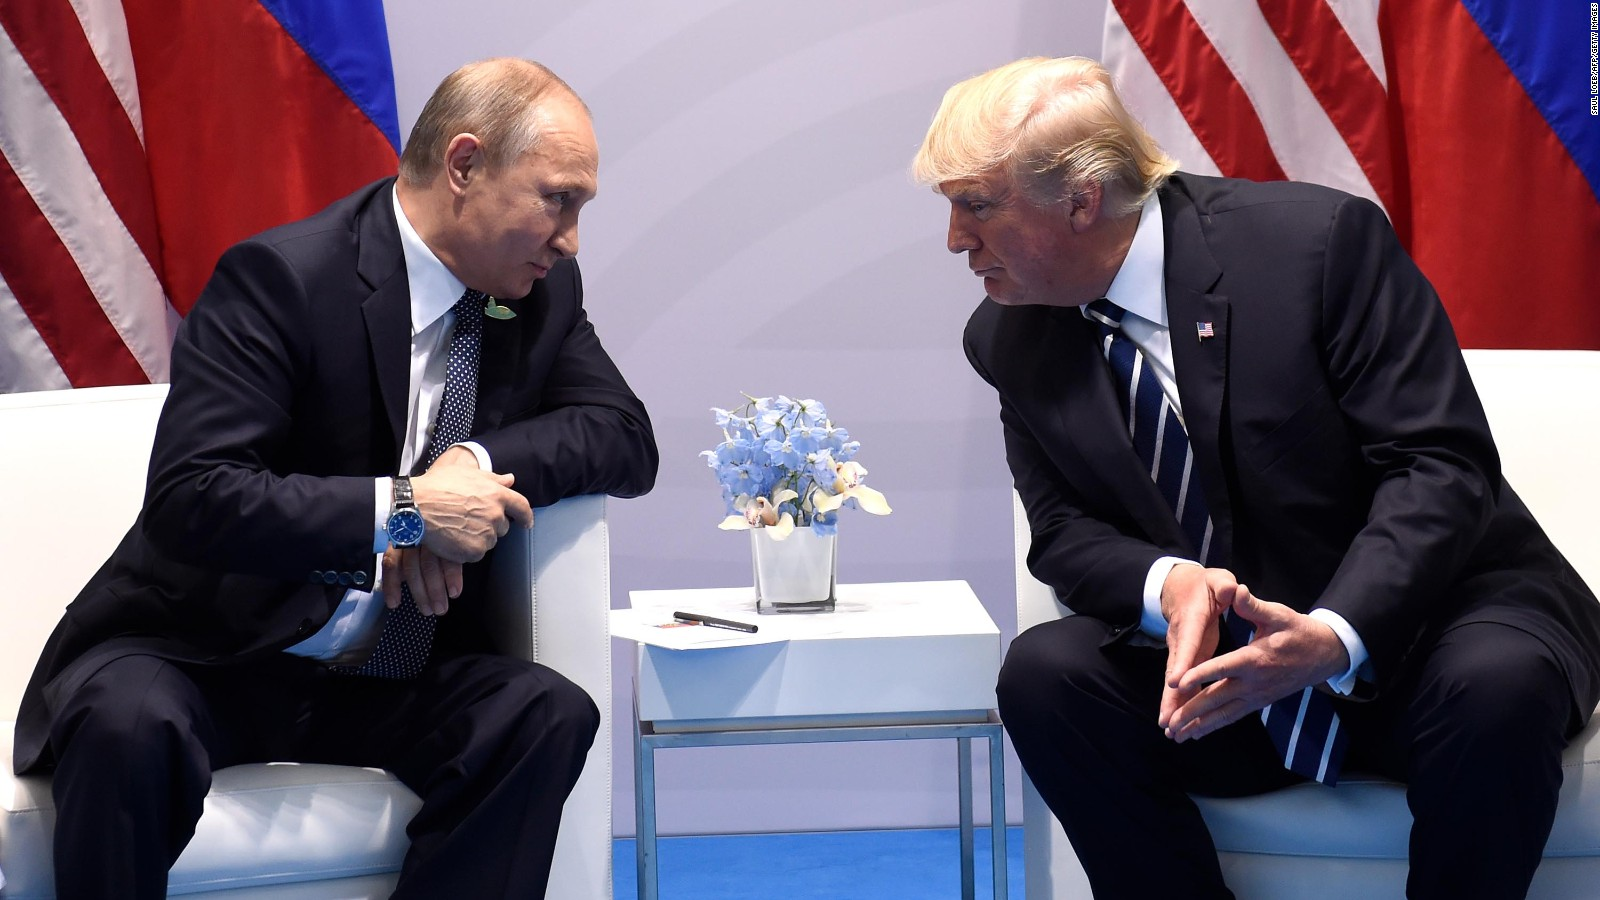 Trump, Putin briefly talk during opening photo at Asia-Pacific summit